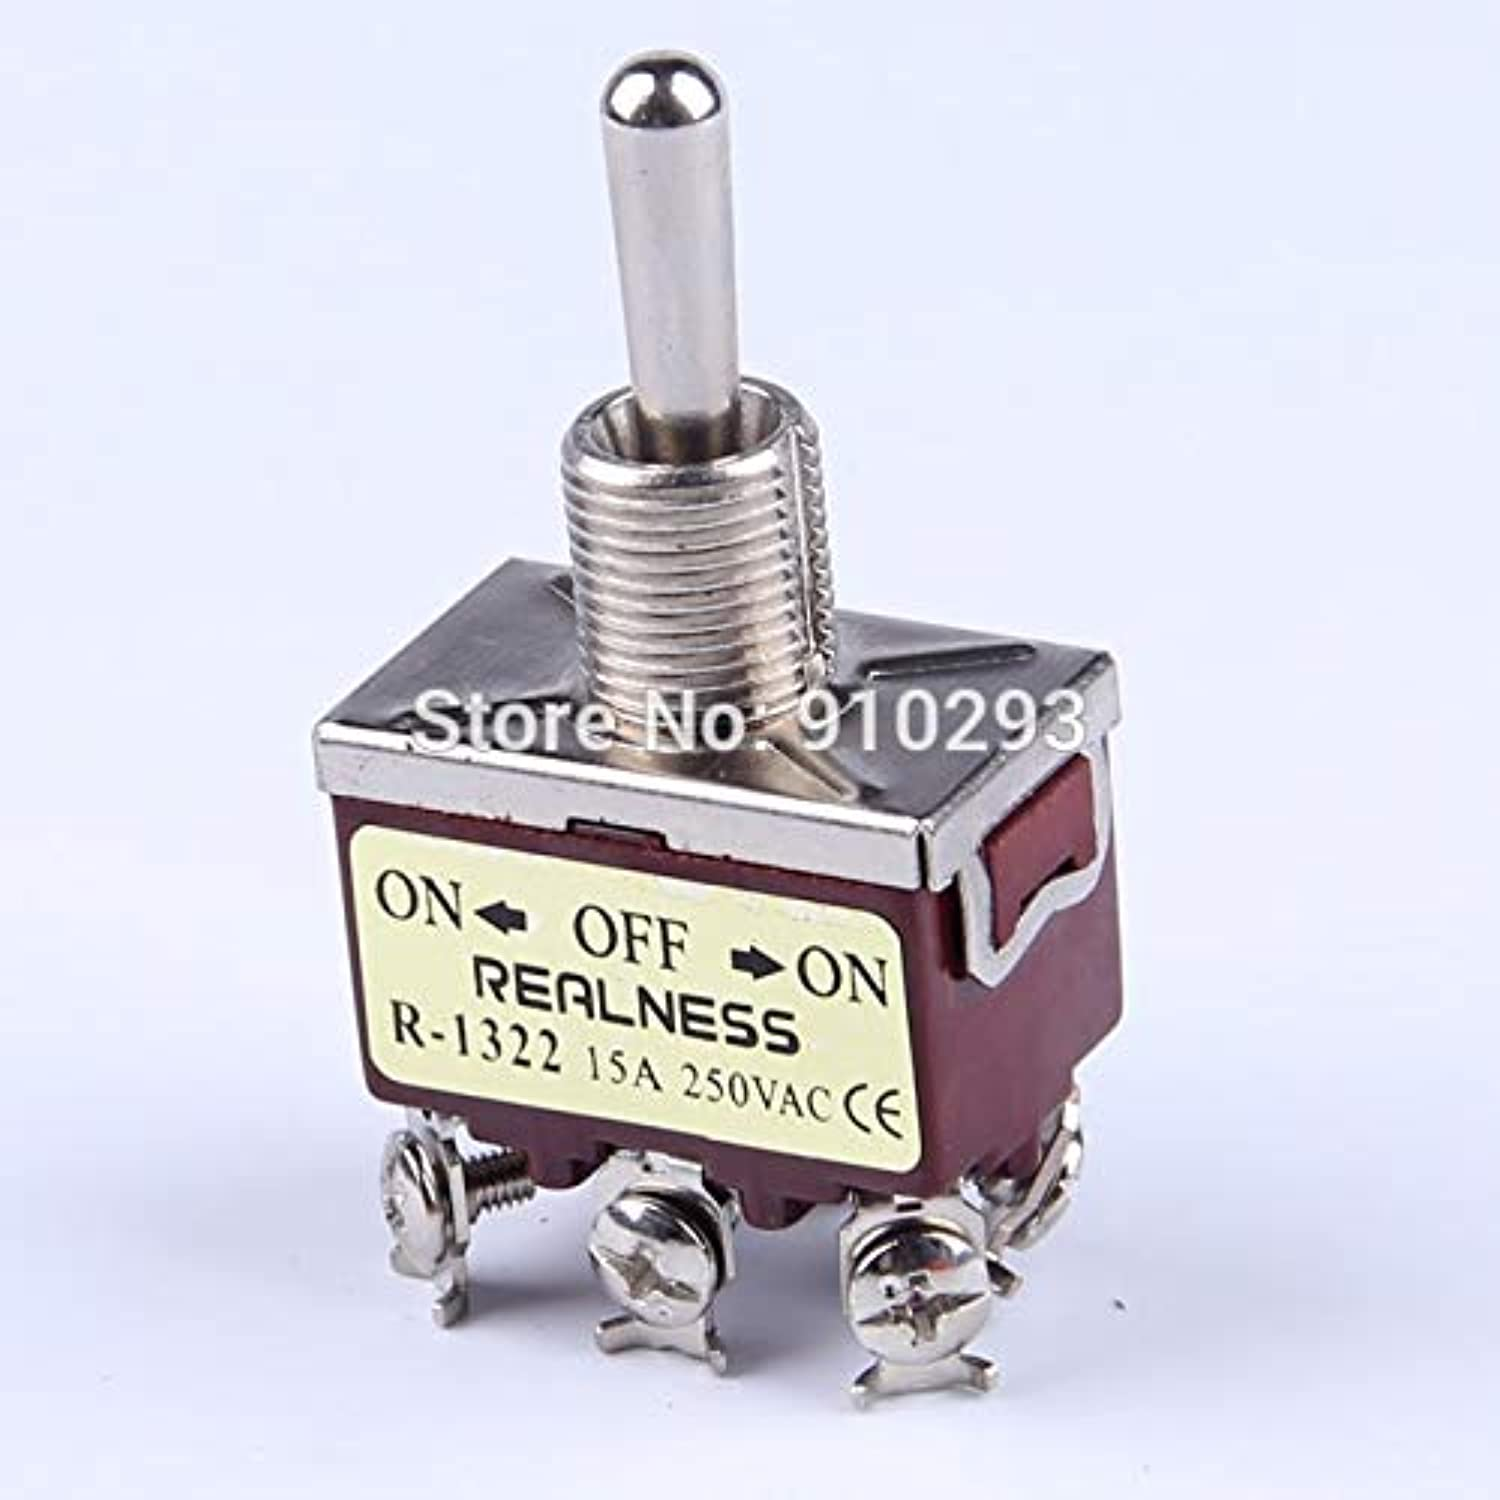 15A 250VAC R1322 Toggle Switch CE Mark